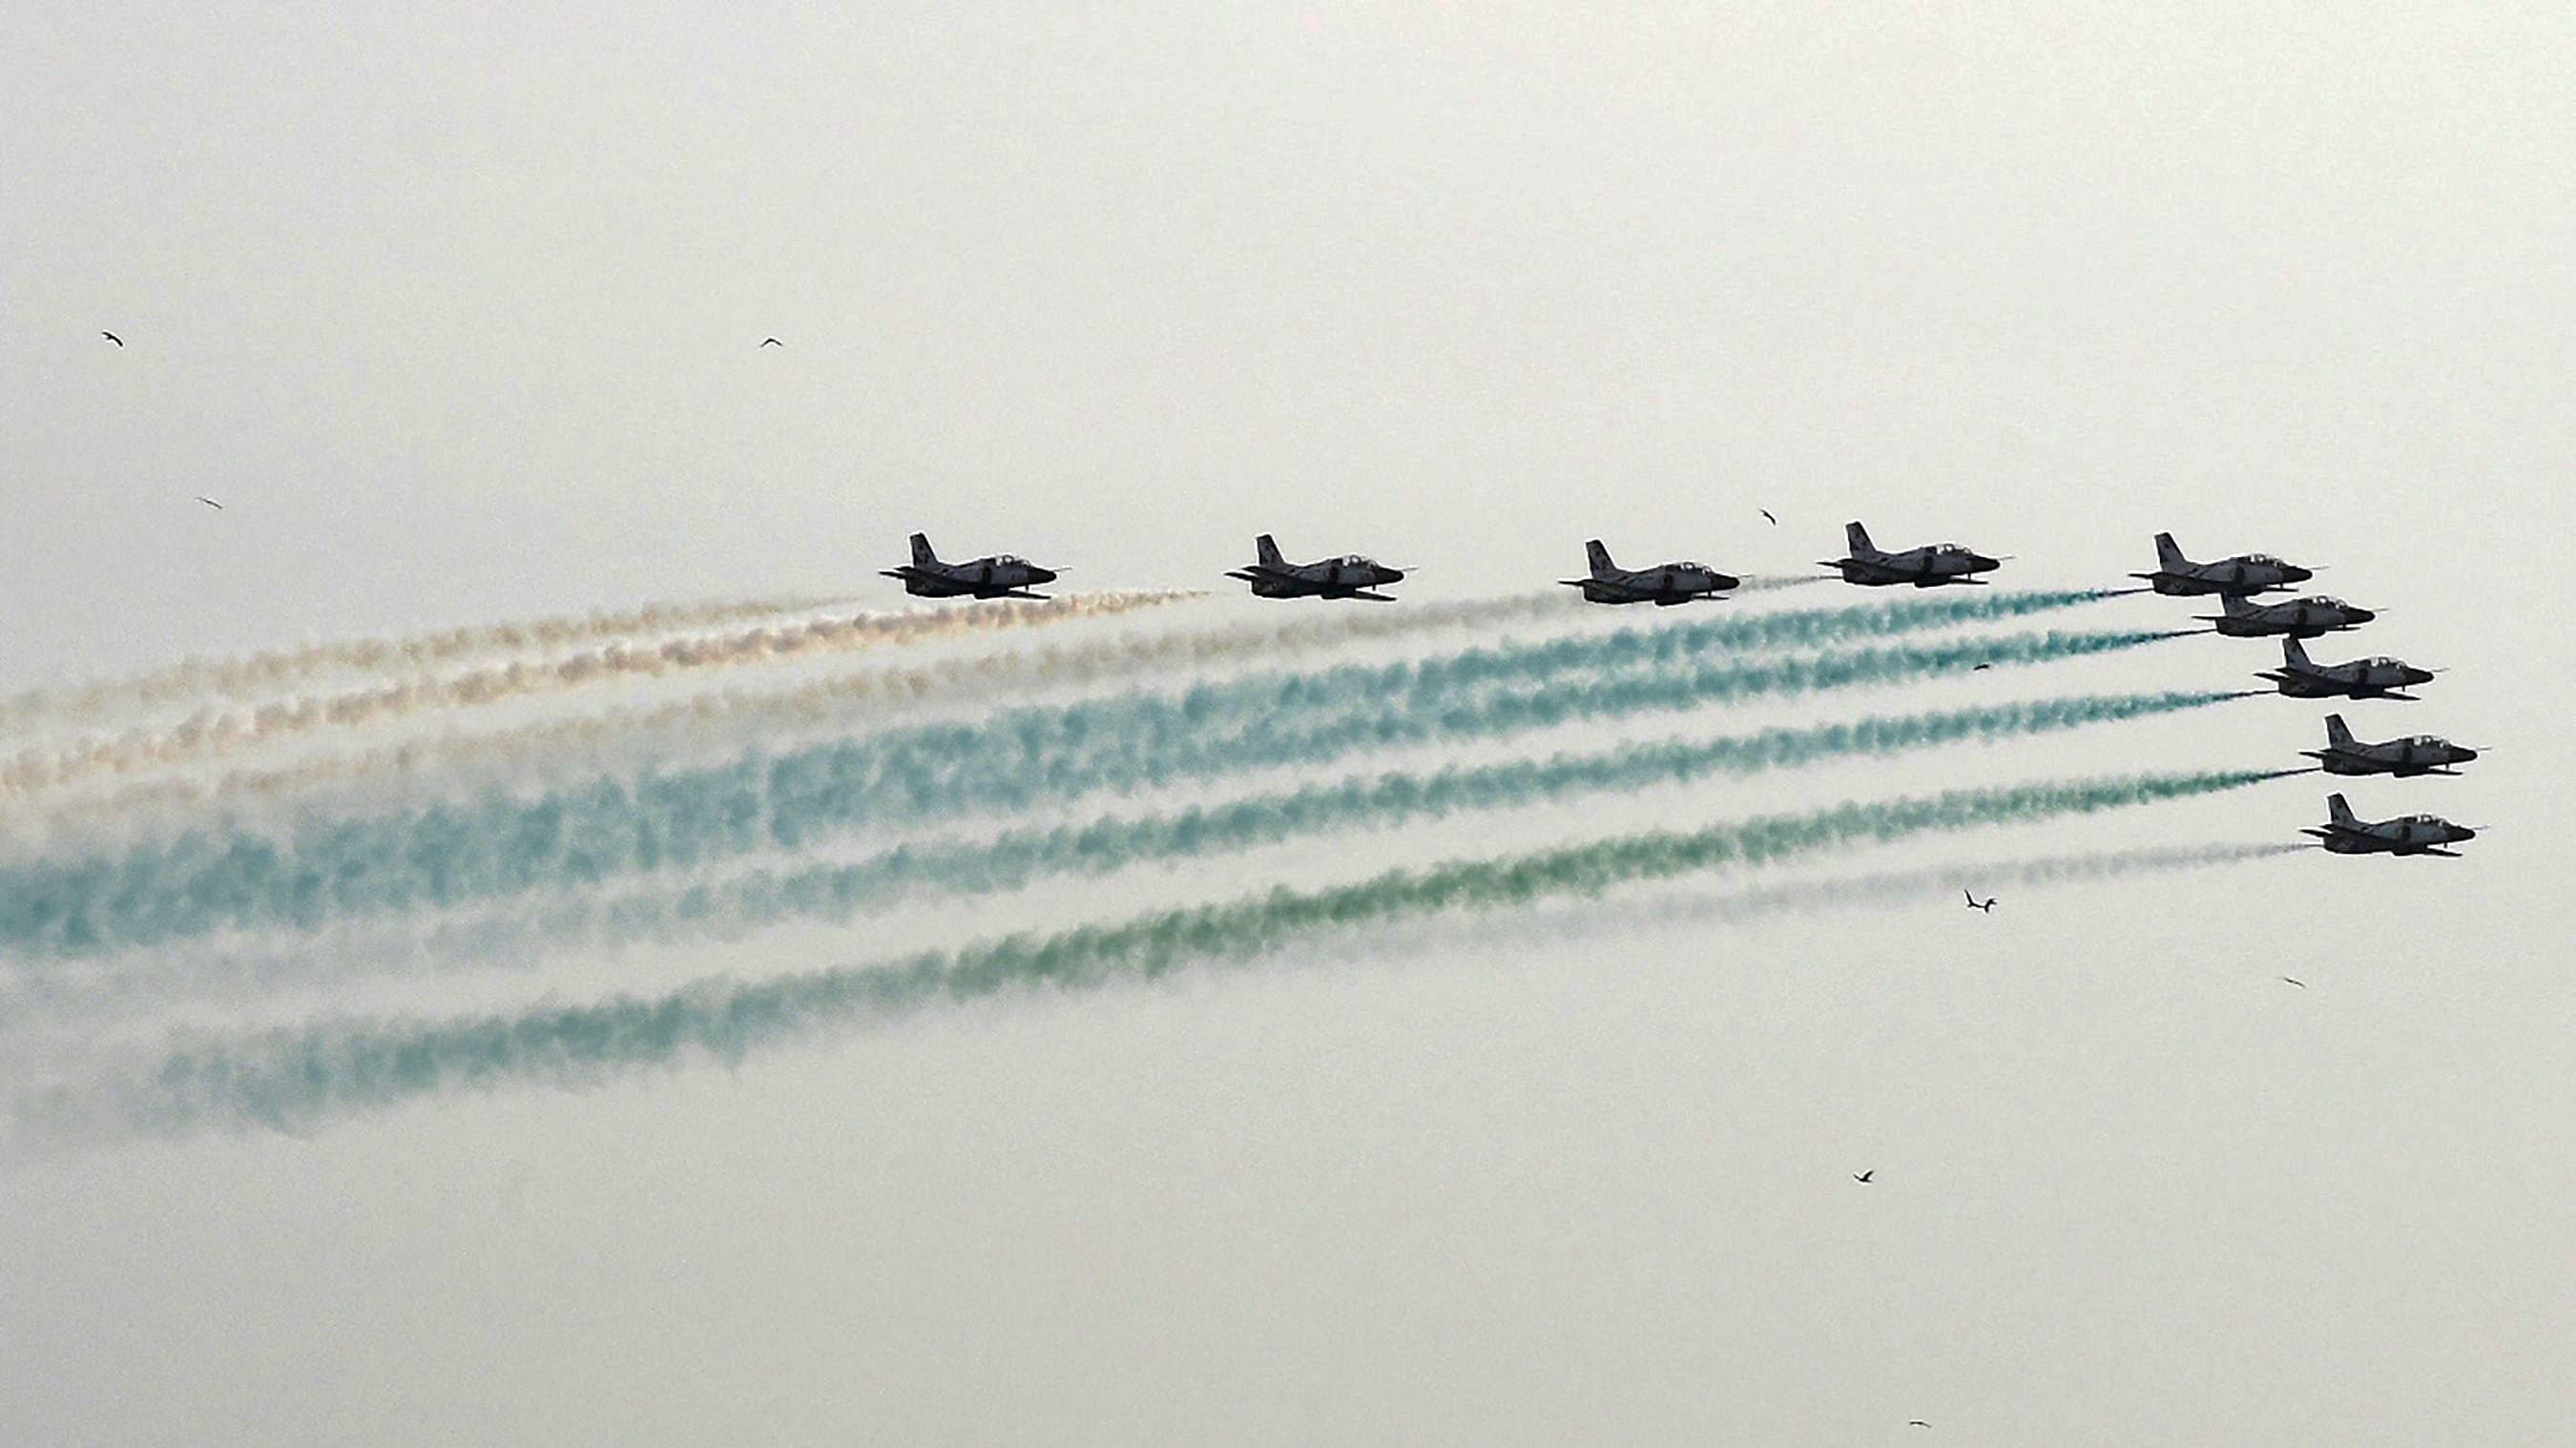 K-8 Karakorums of the Pakistan Air Force's Sherdils aerobatics display team fly in formation during the tenth International Defence Exhibition and Seminar (IDEAS) in Karachi on November 29, 2018. (Photo by ASIF HASSAN / AFP) — AFP or licensors